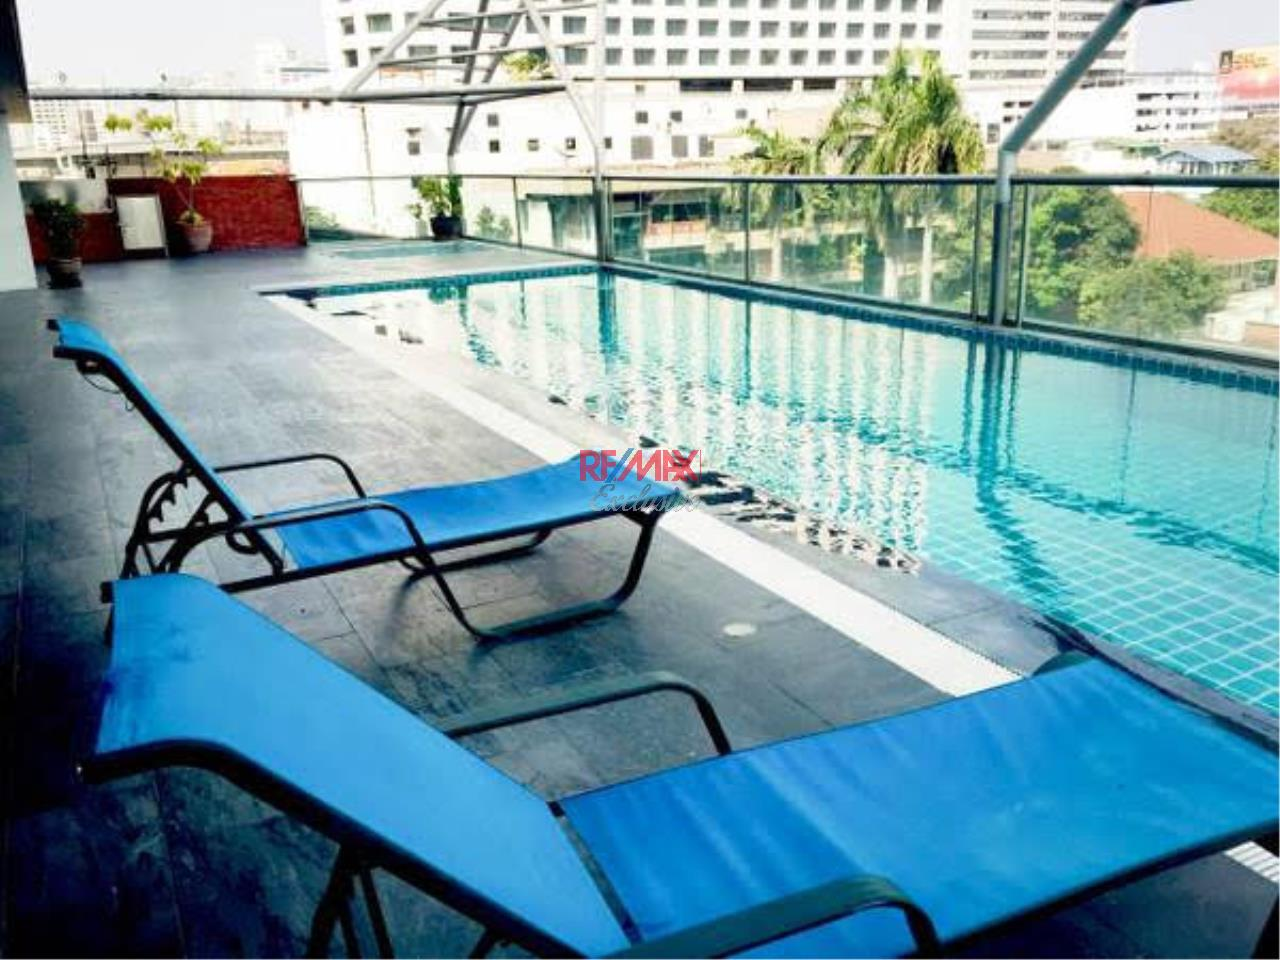 RE/MAX Exclusive Agency's Baan Saran 1 Bedroom Big Size for sale Good Price 4200000 THB 16